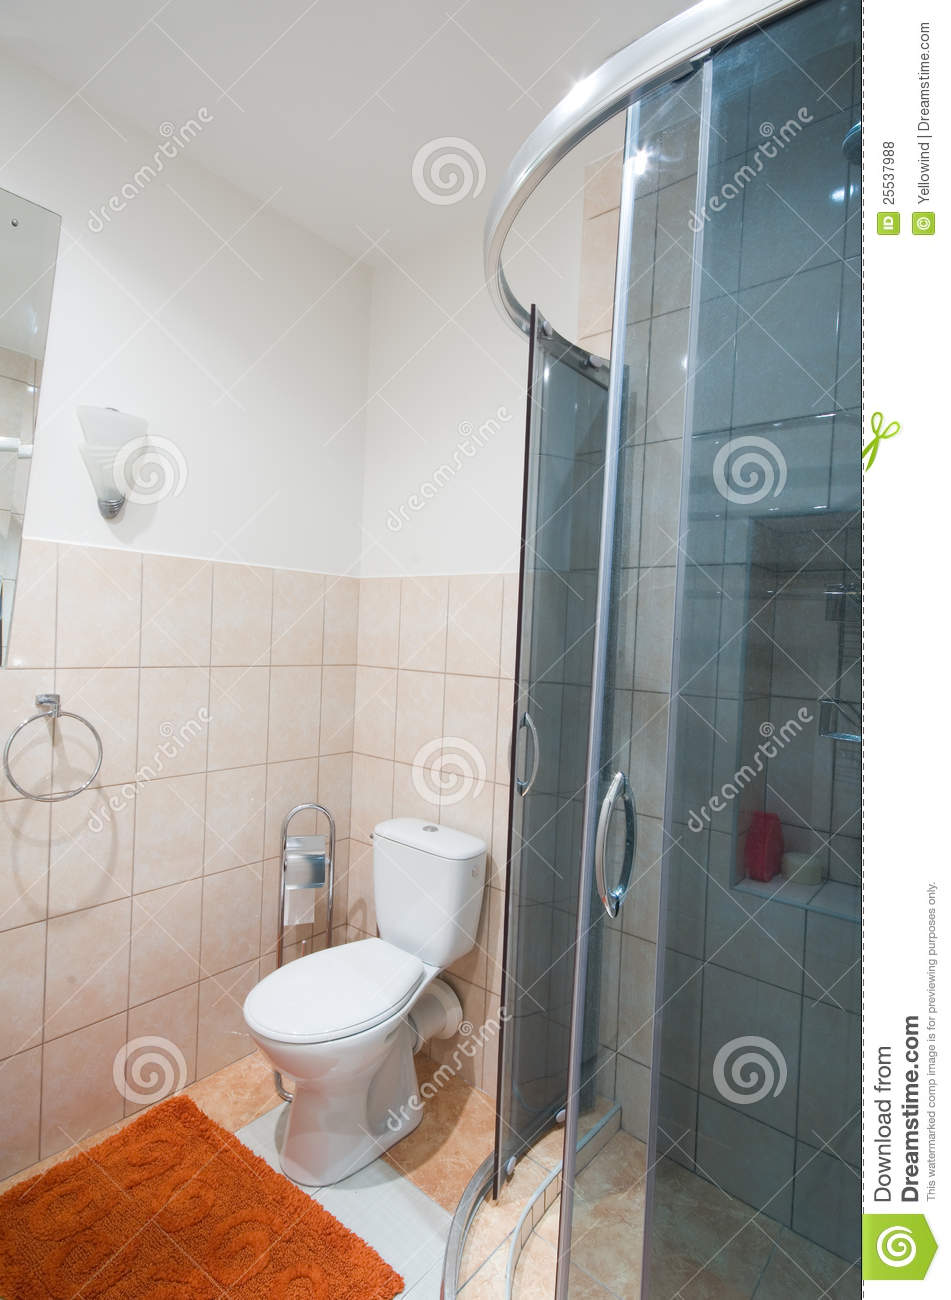 salle de bains avec la toilette de douche photo stock image 25537988. Black Bedroom Furniture Sets. Home Design Ideas